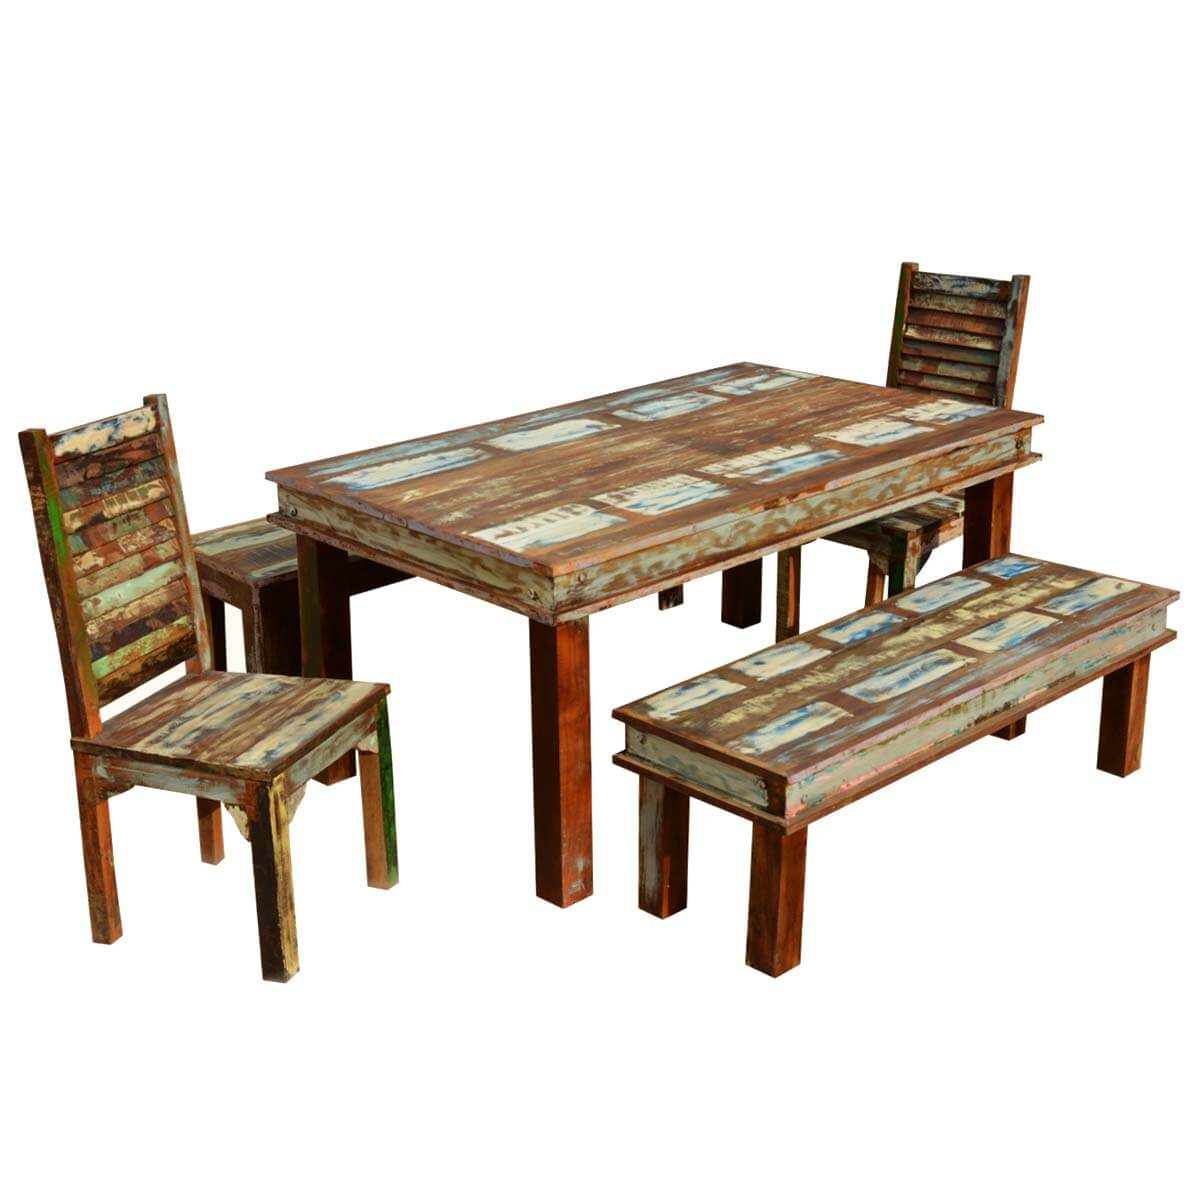 Dining Table With Two Chairs: Sierra Reclaimed Wood Furniture Dining Table With 2 Chairs